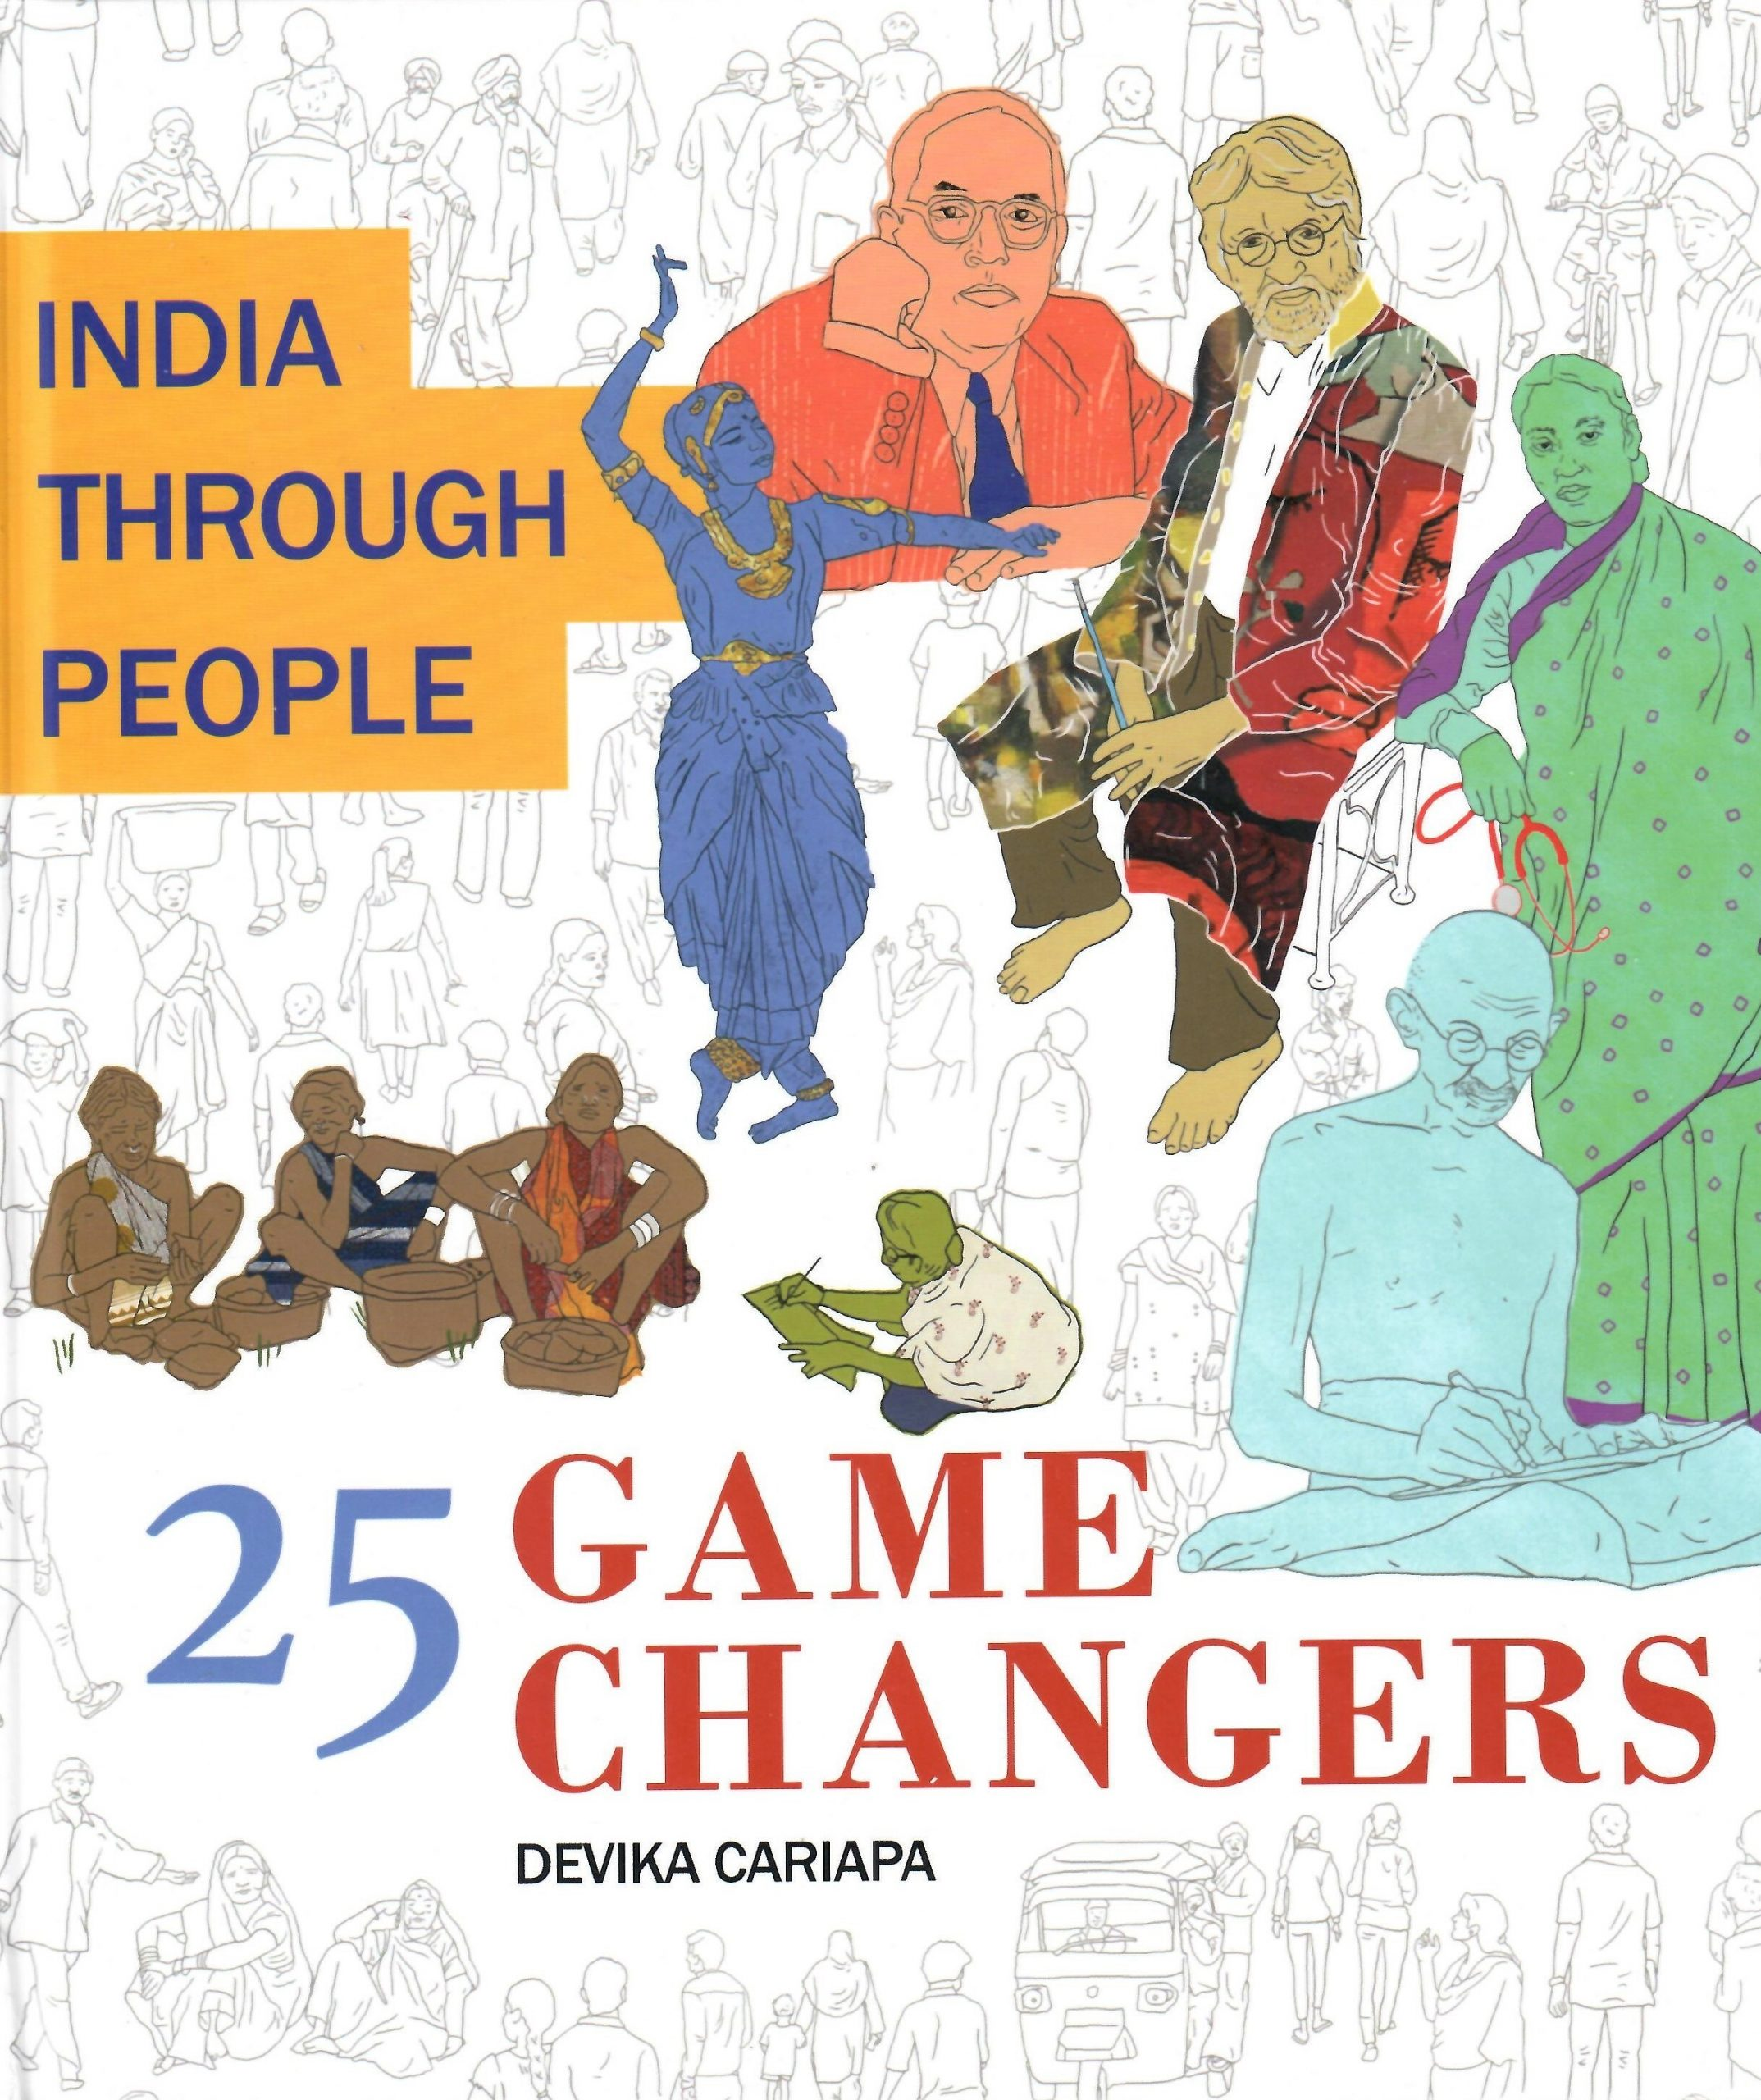 India Through People: 25 Game Changers